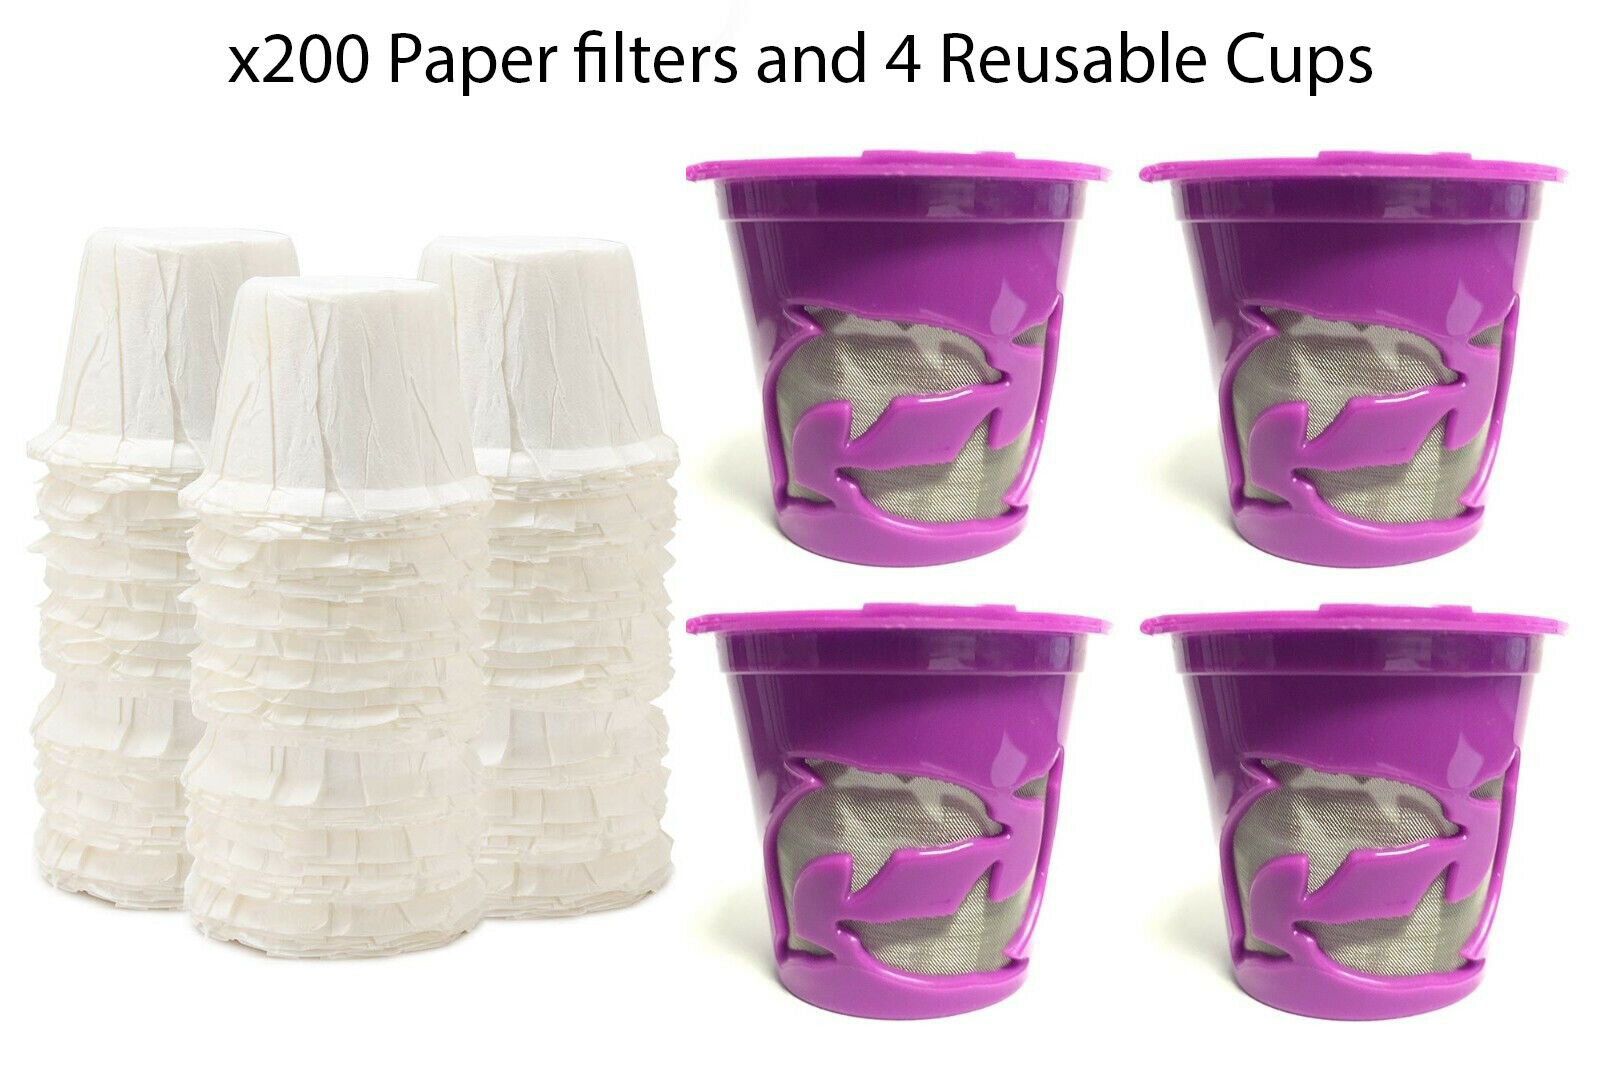 x200 Paper Filters & 4 K Cups